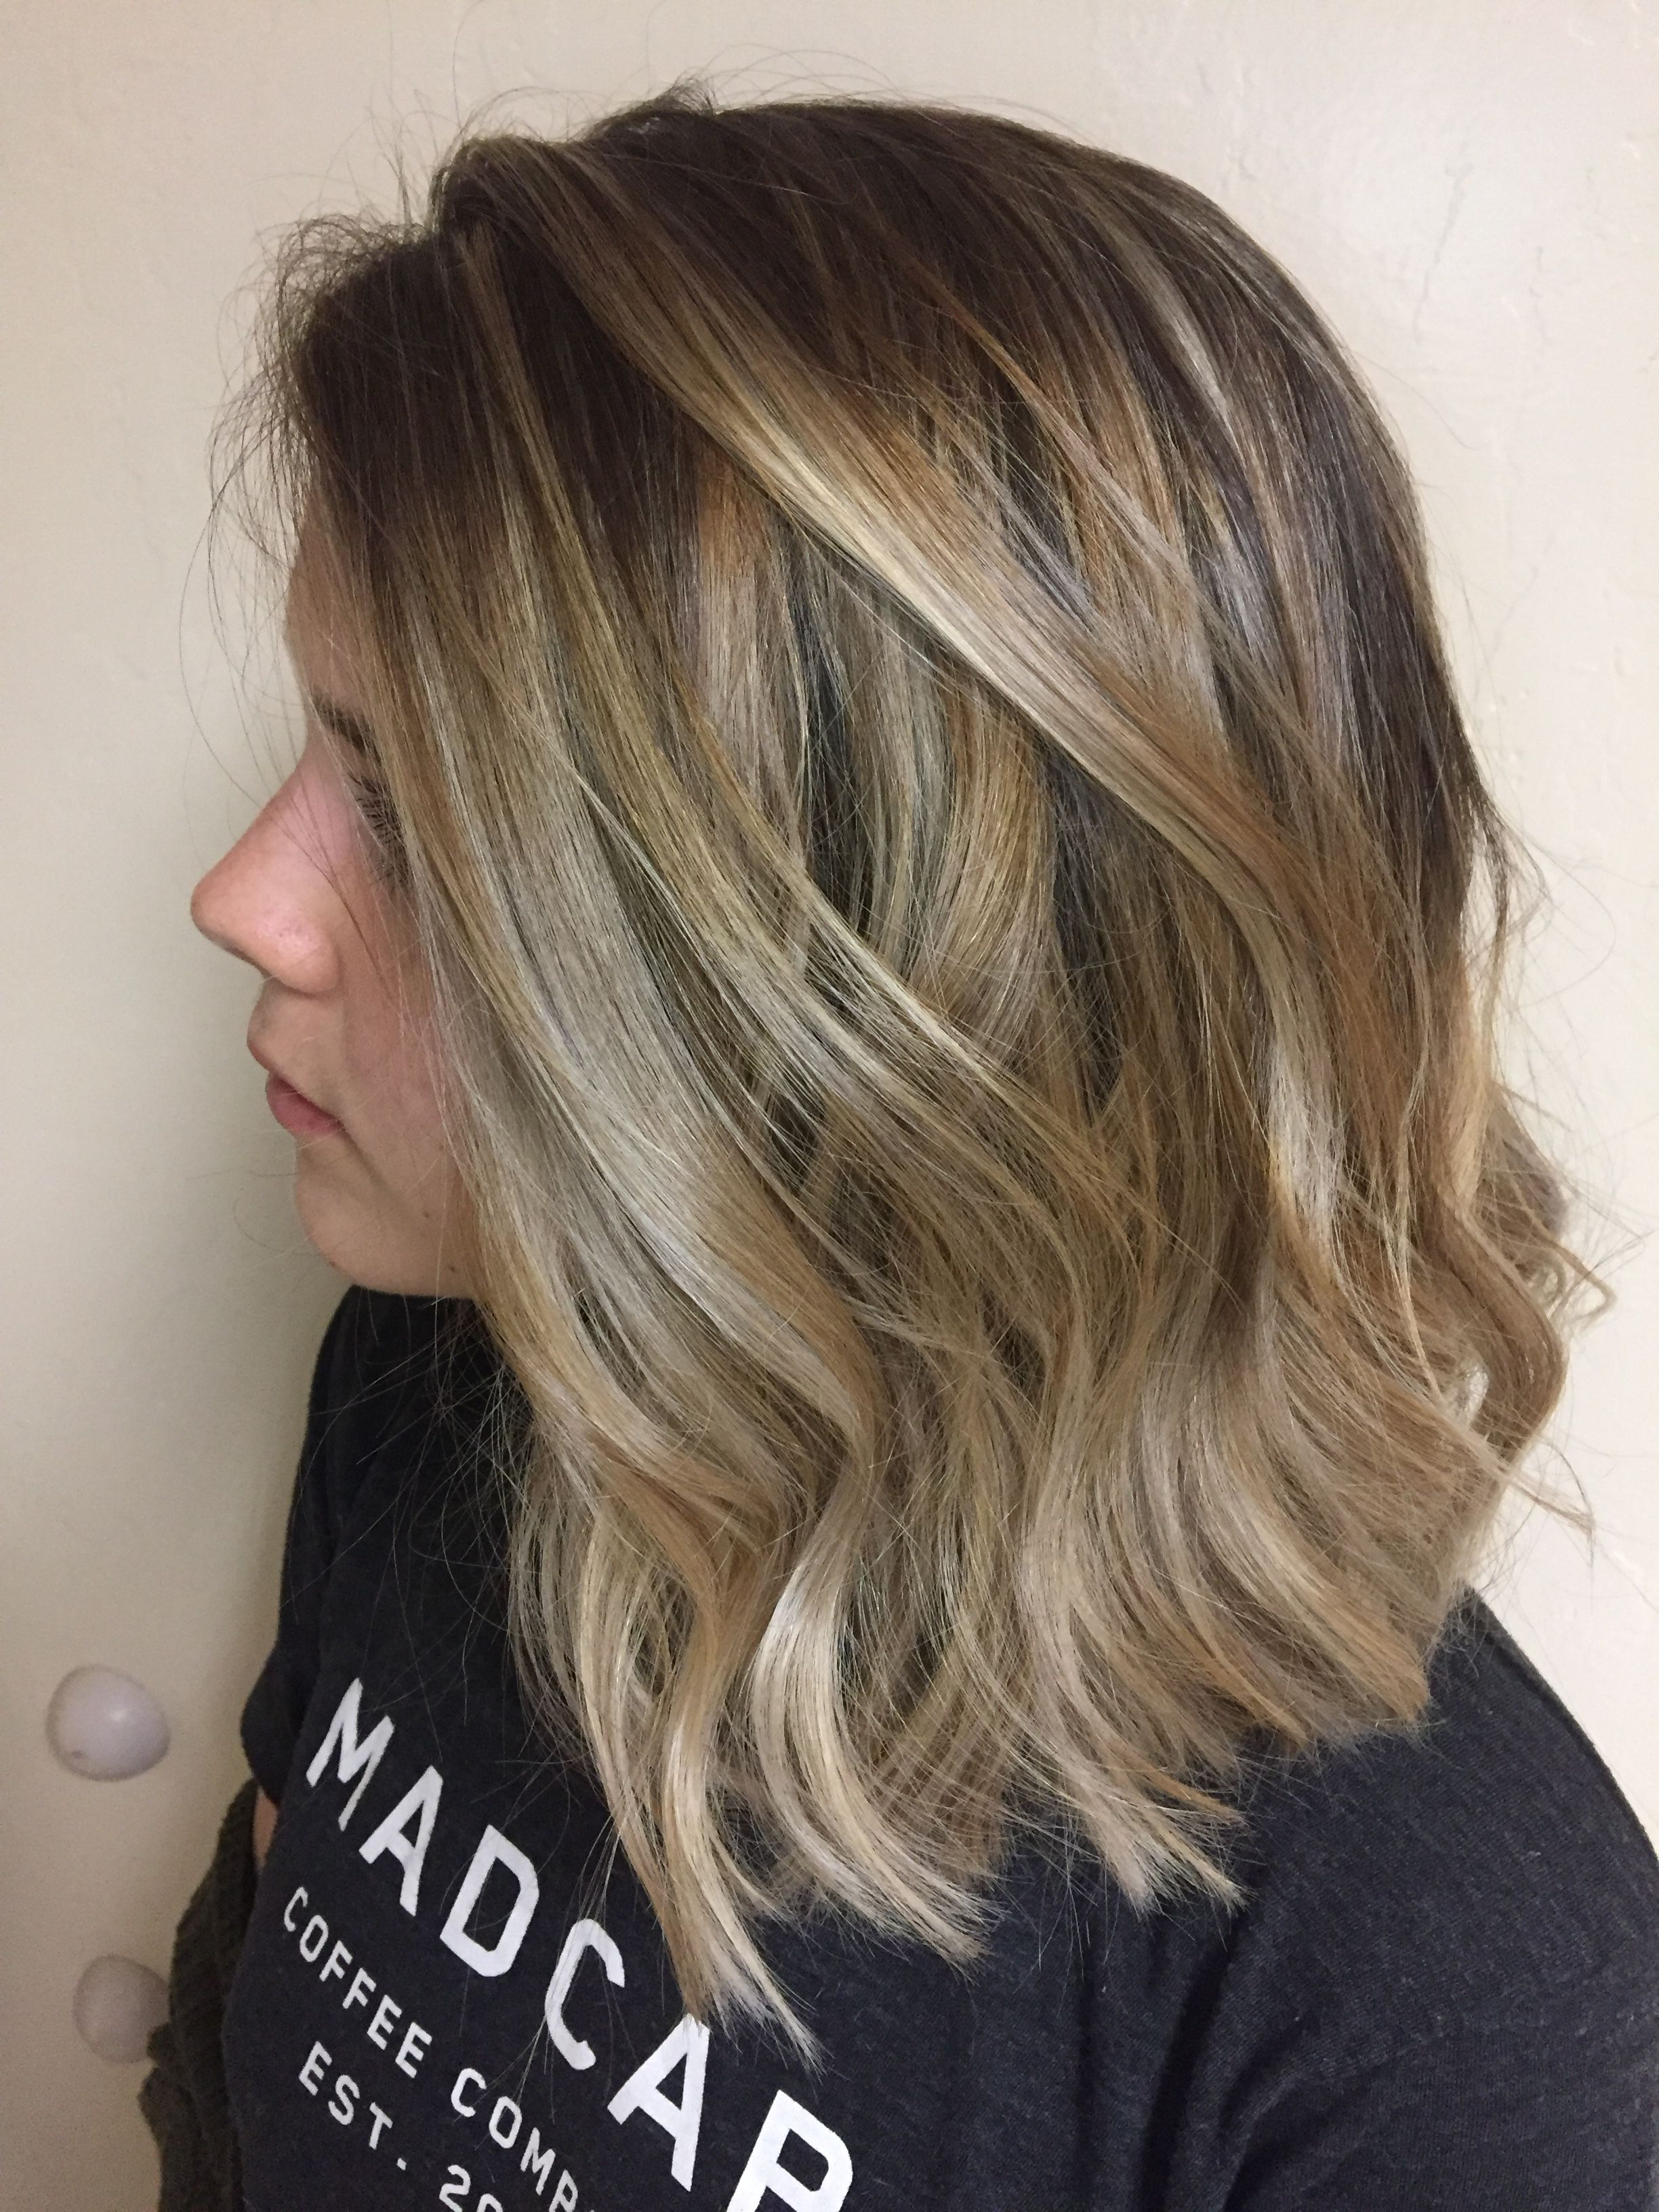 Natural blonde balayage ombré lob hairstyle